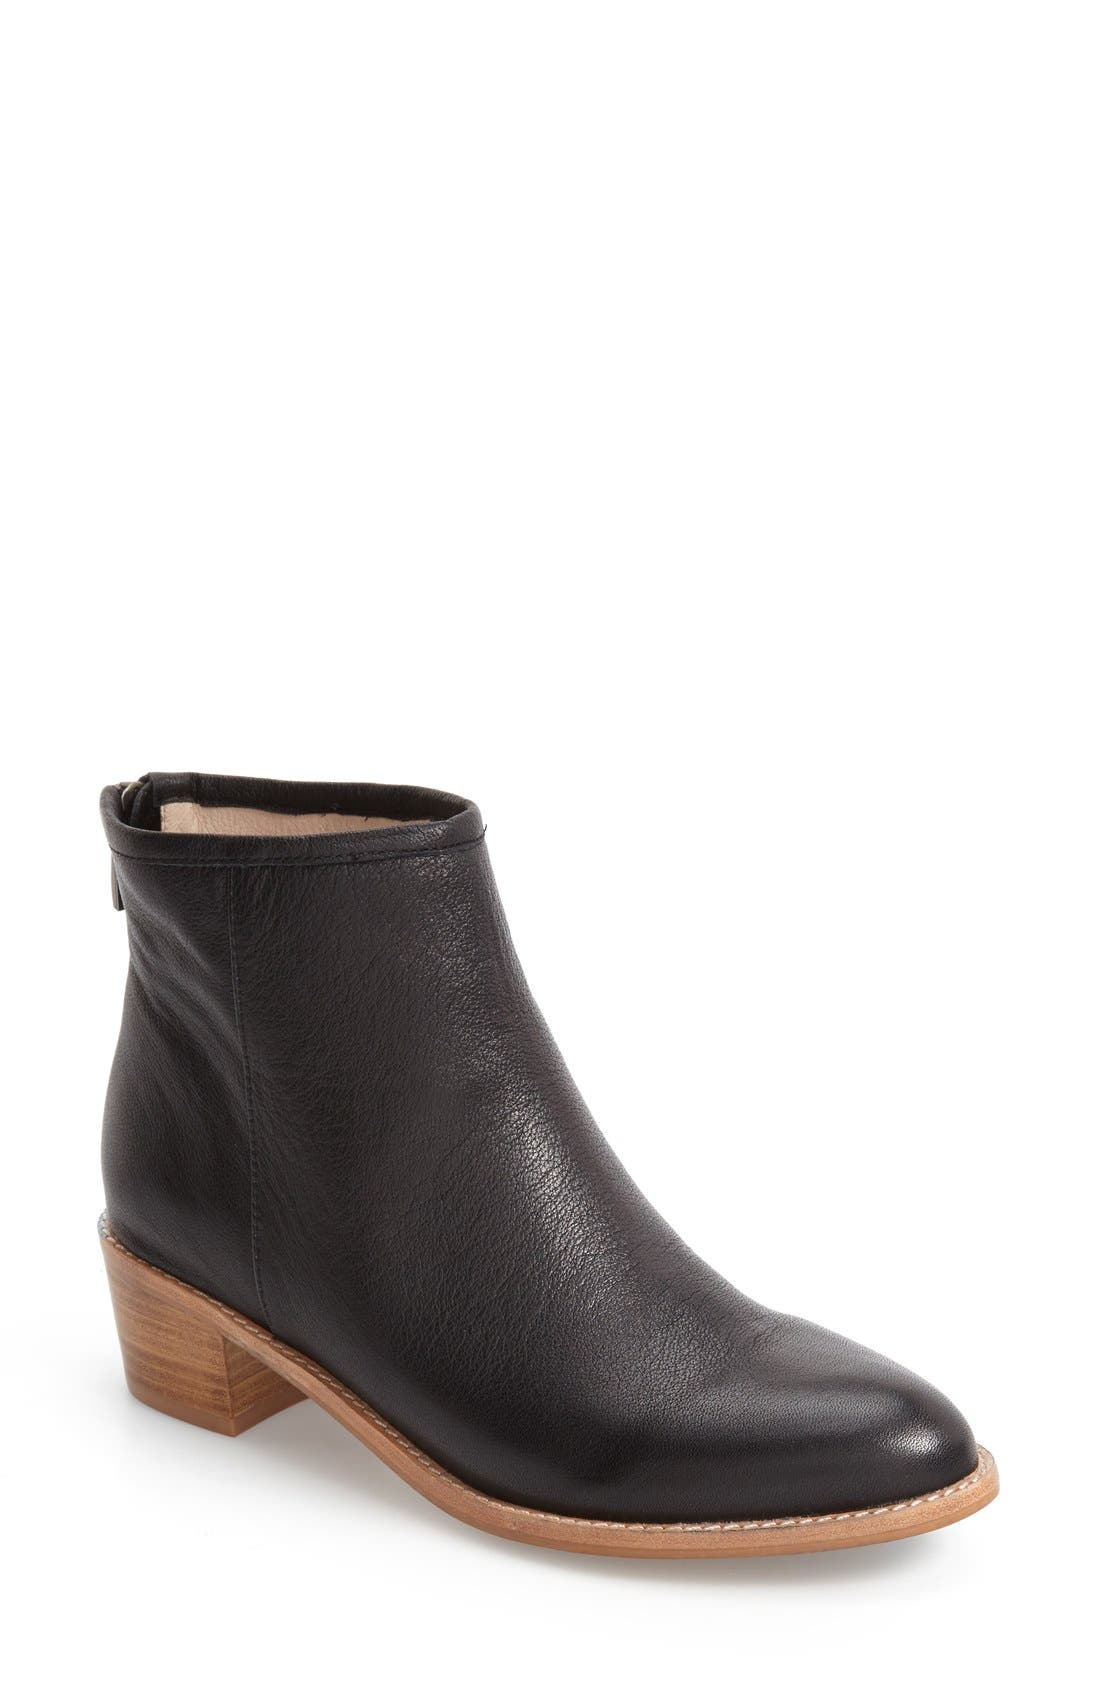 Mae Bootie,                             Main thumbnail 1, color,                             Black Leather